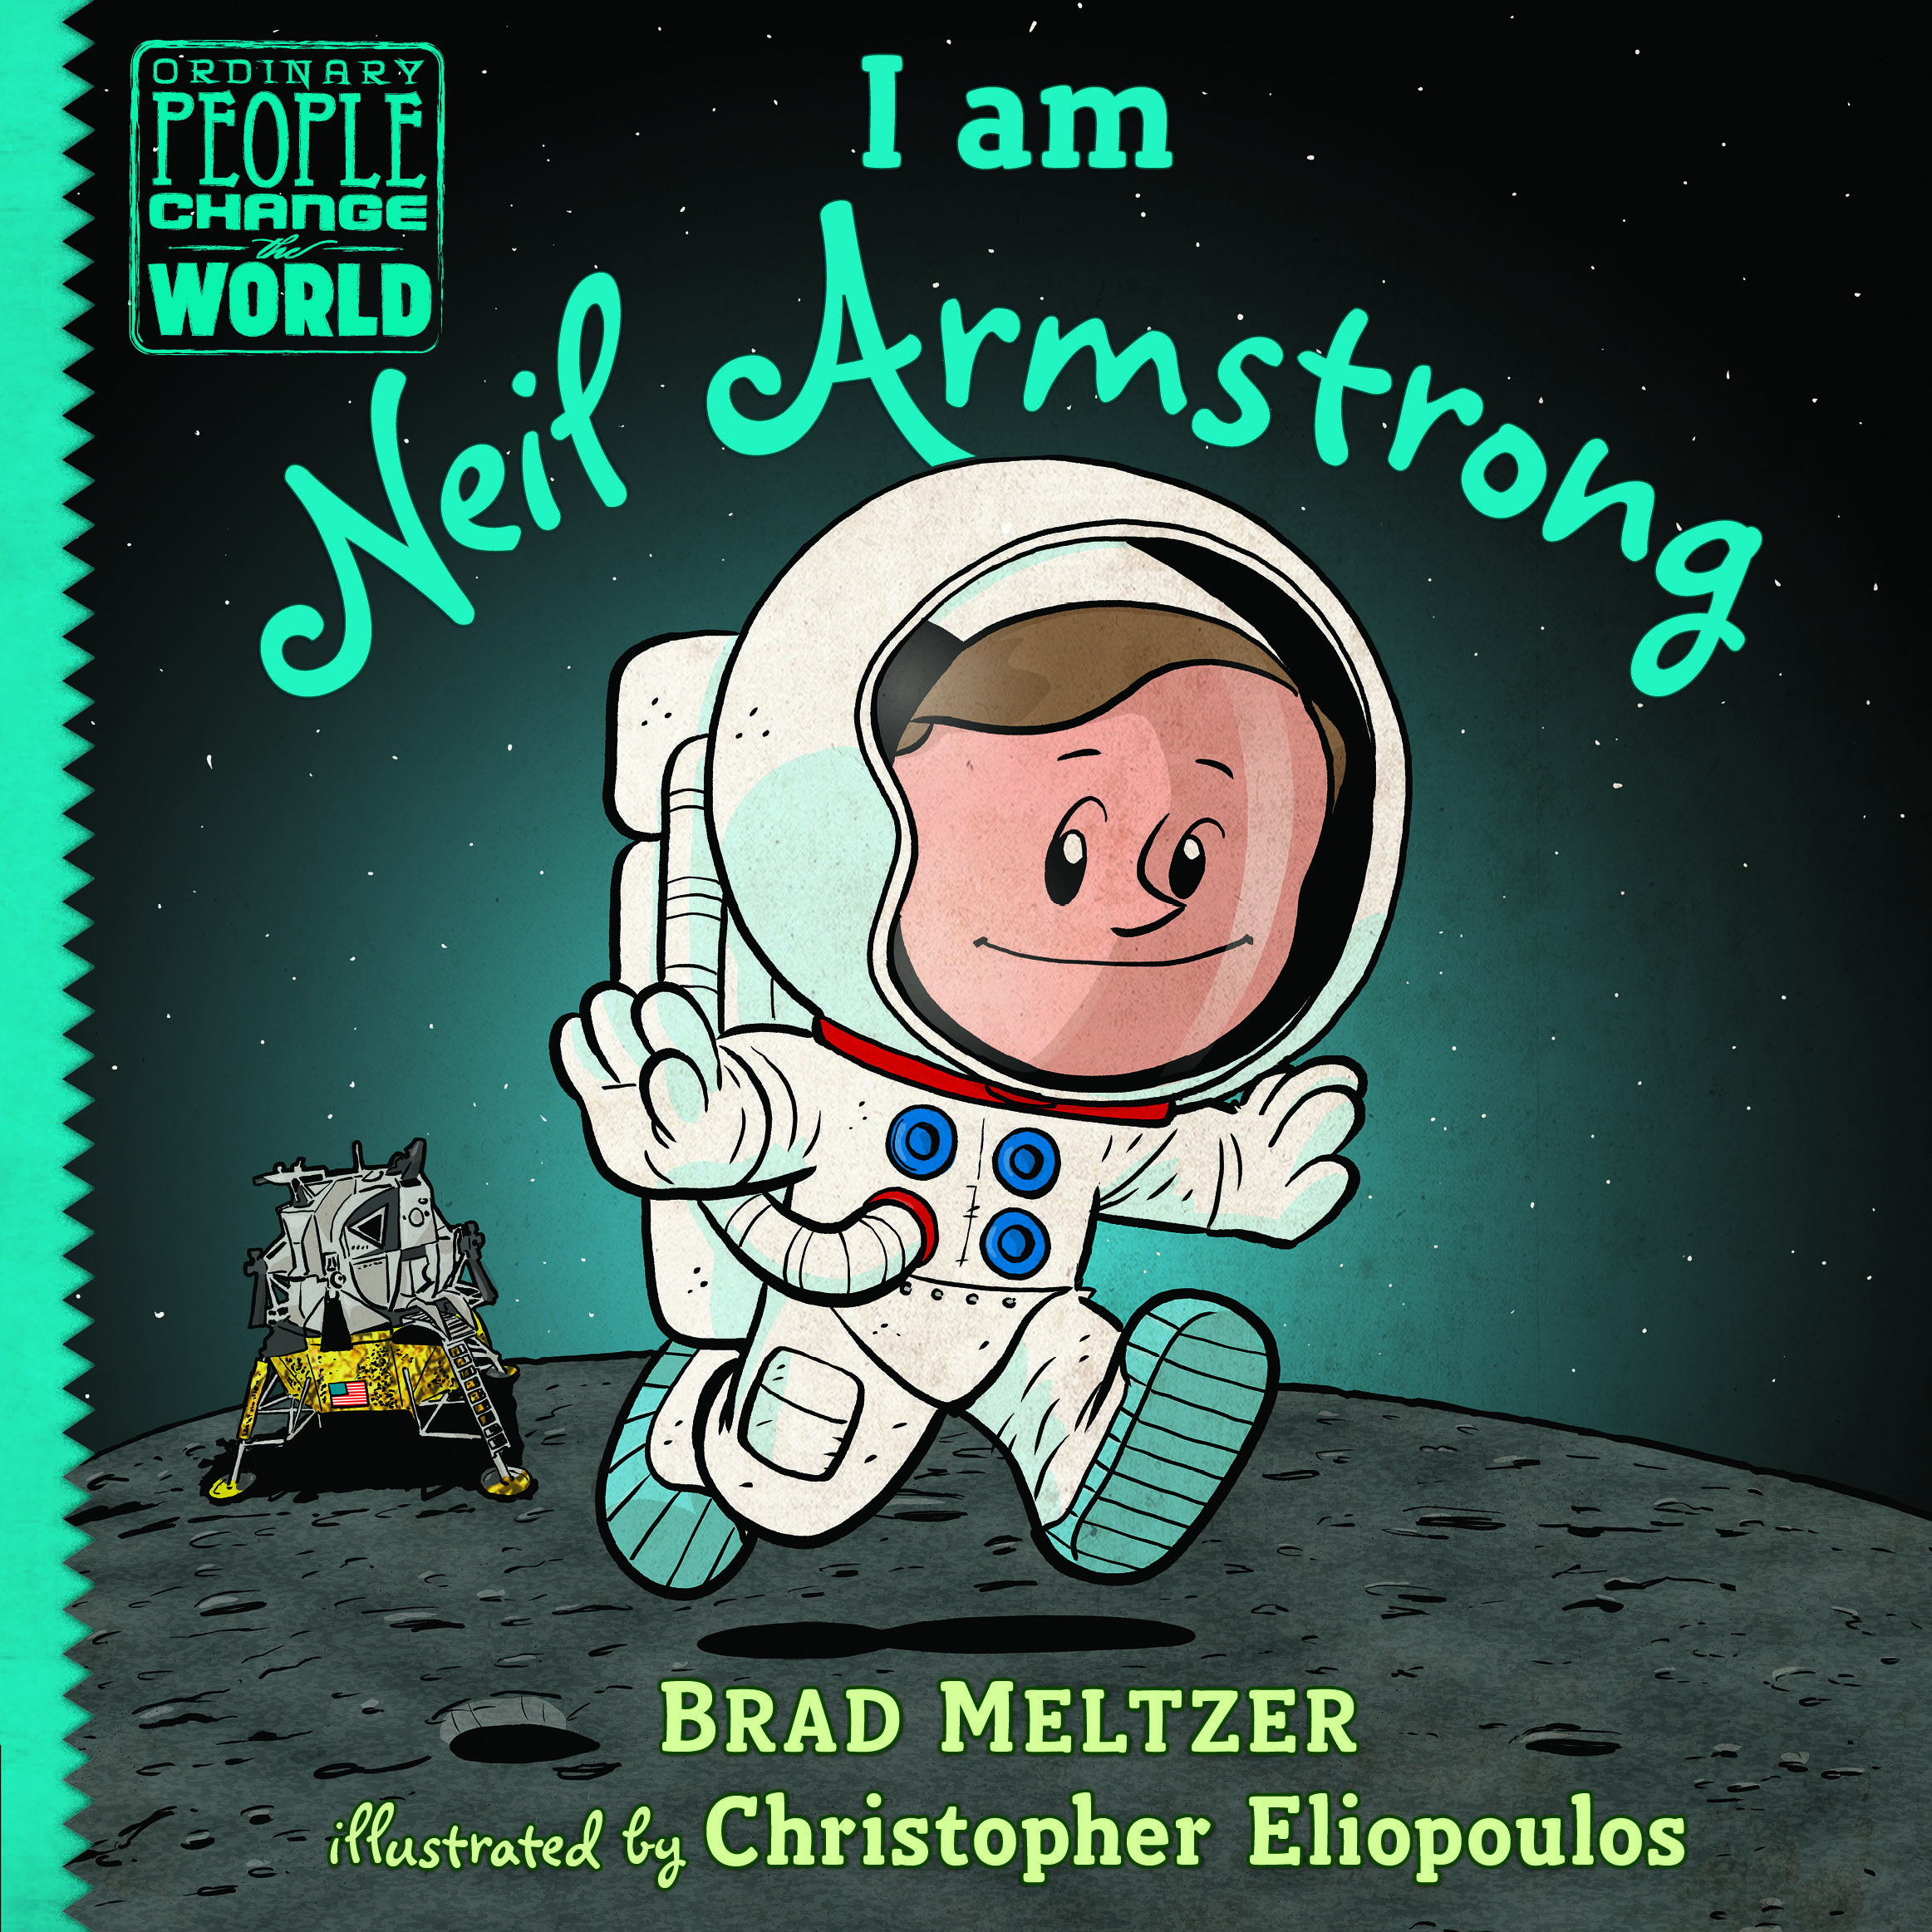 Neil Armstrong's journey to the moon is the focus of Brad